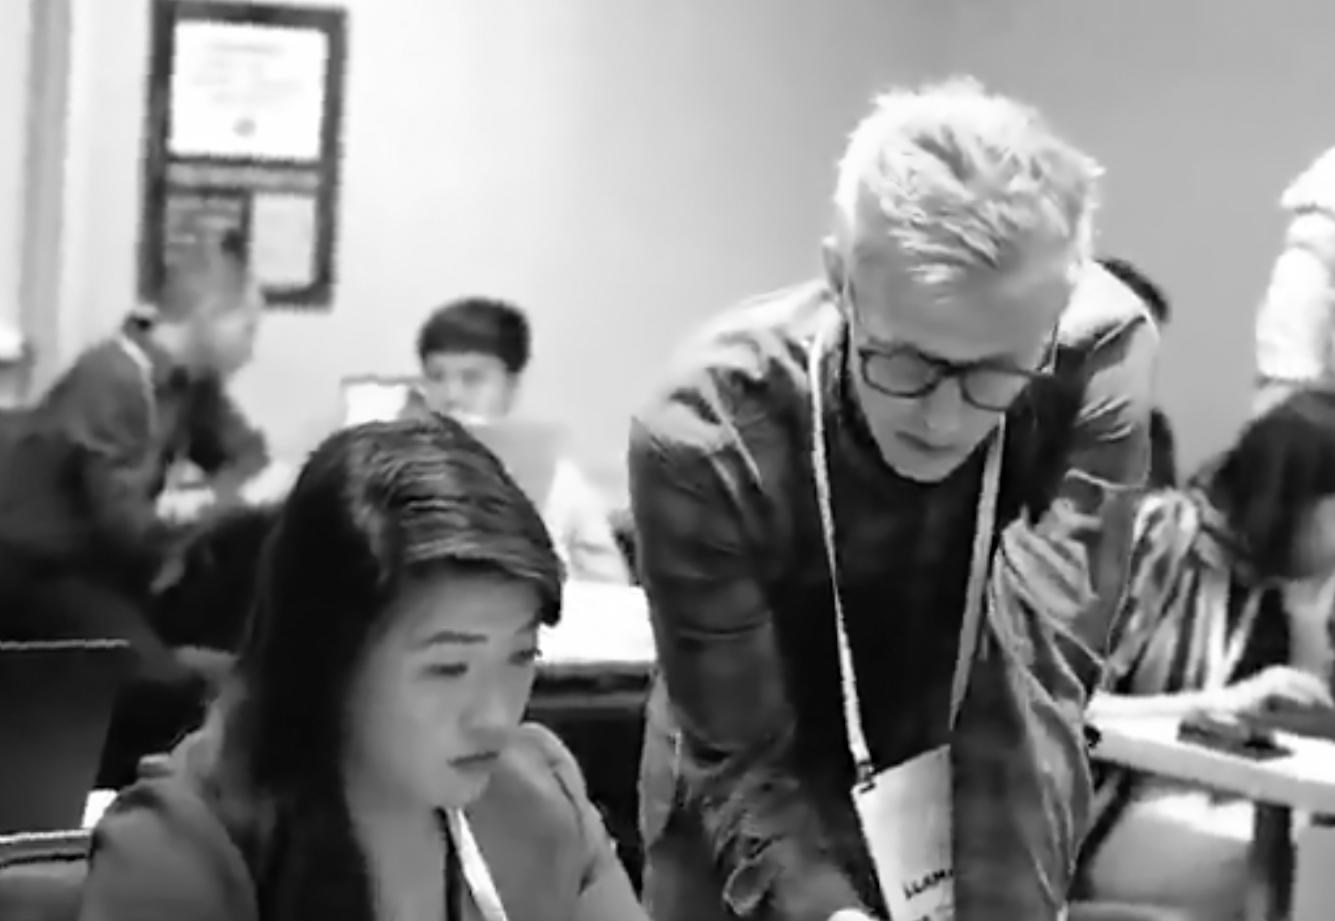 David leans over a woman with dark hair. He has glasses on and a white lanyard. He's in a room with several people in the background looking at their laptops.